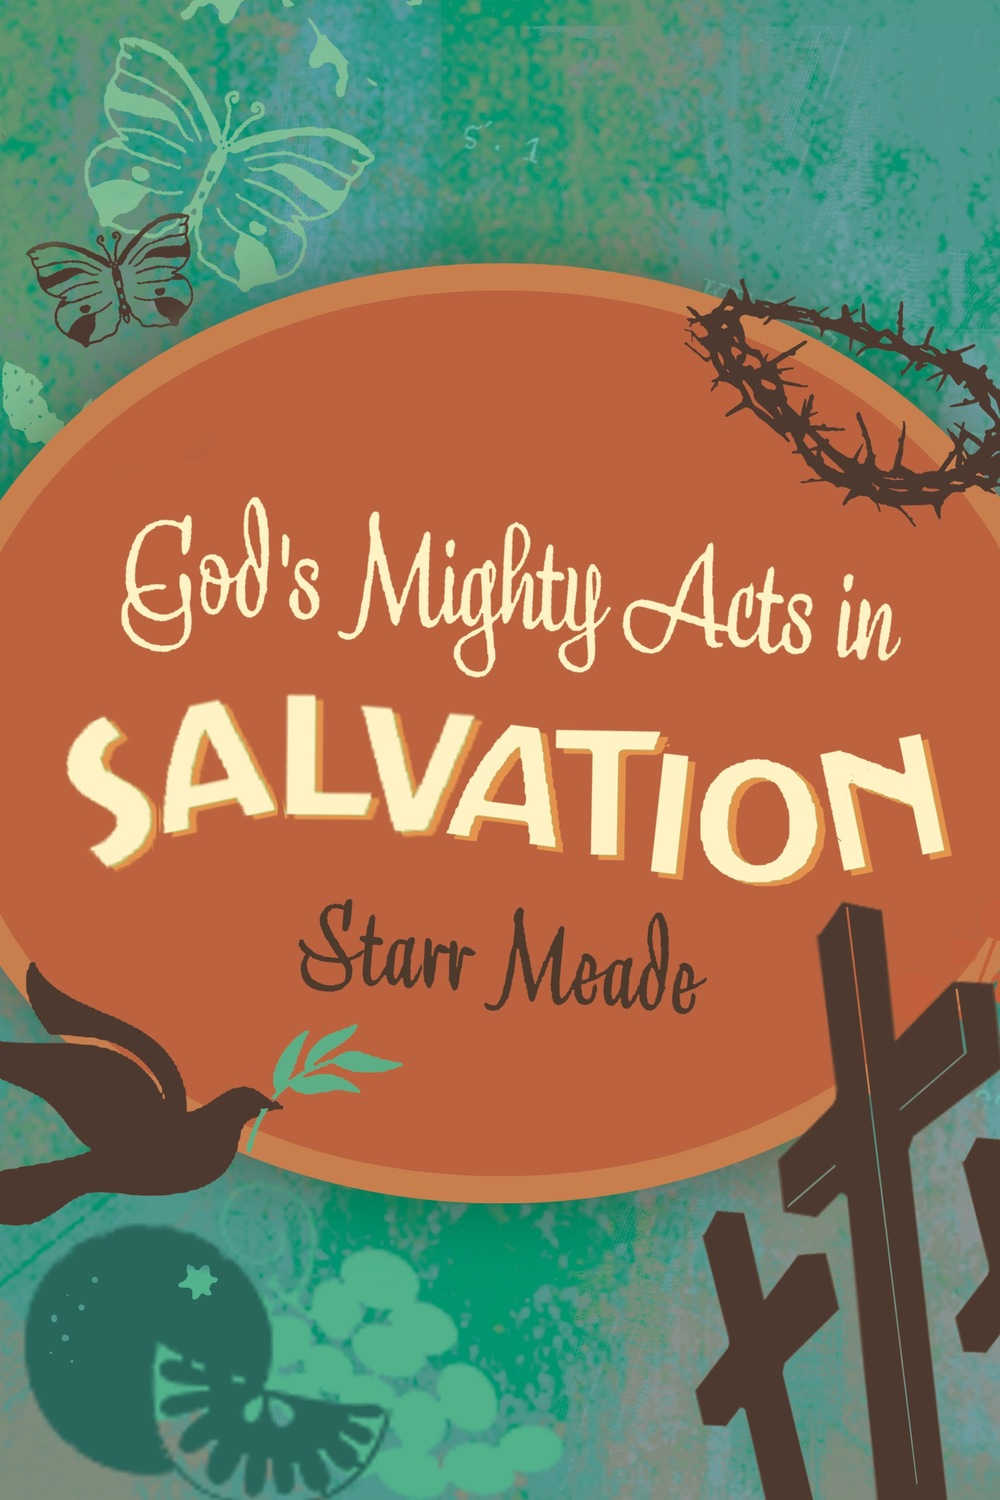 God's Mighty Acts in Salvation